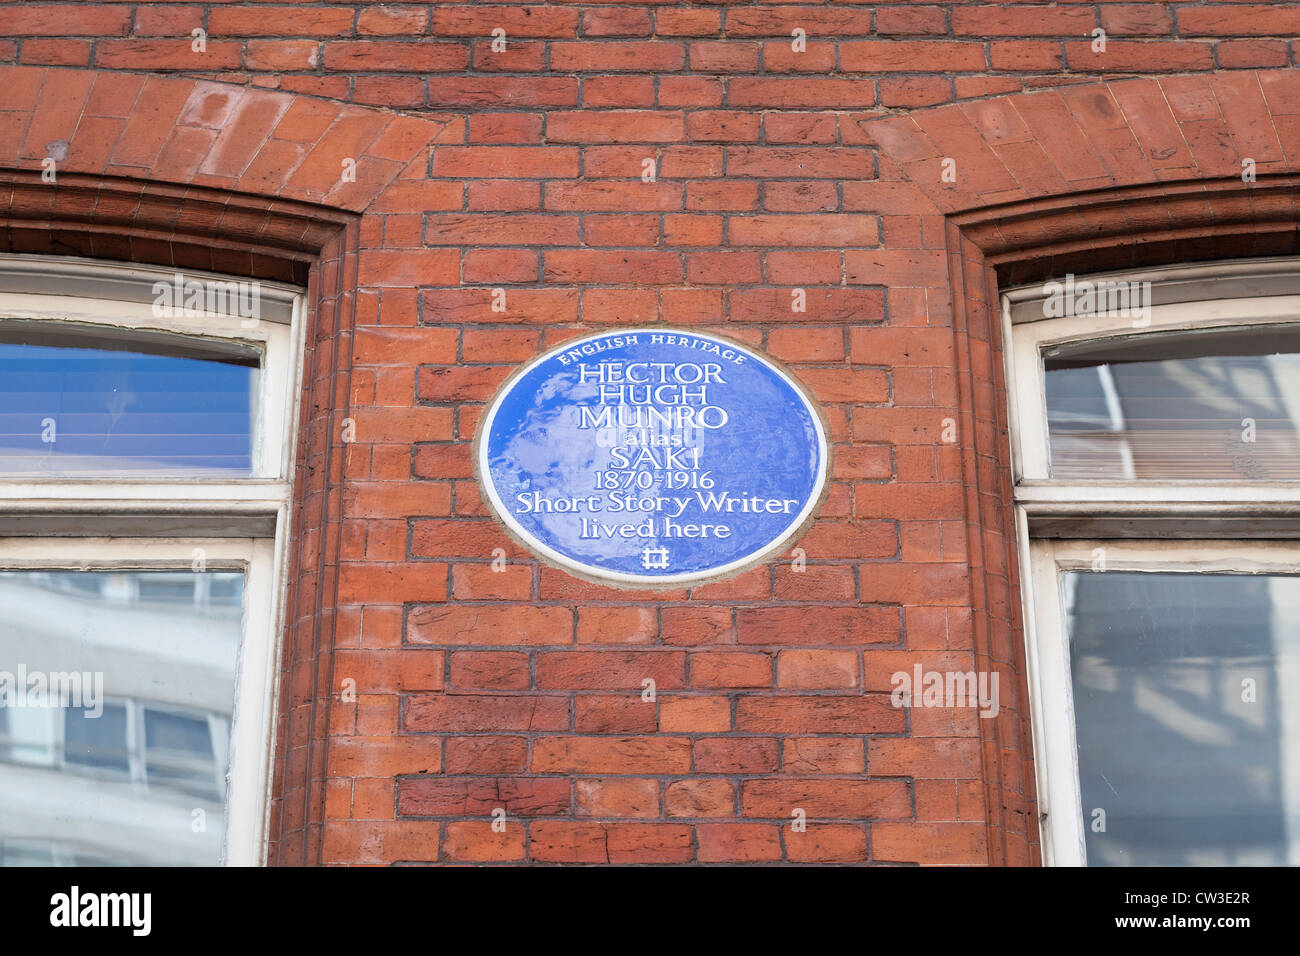 Blue plaque marking the home of Hector Hugh Munro, London, England - Stock Image